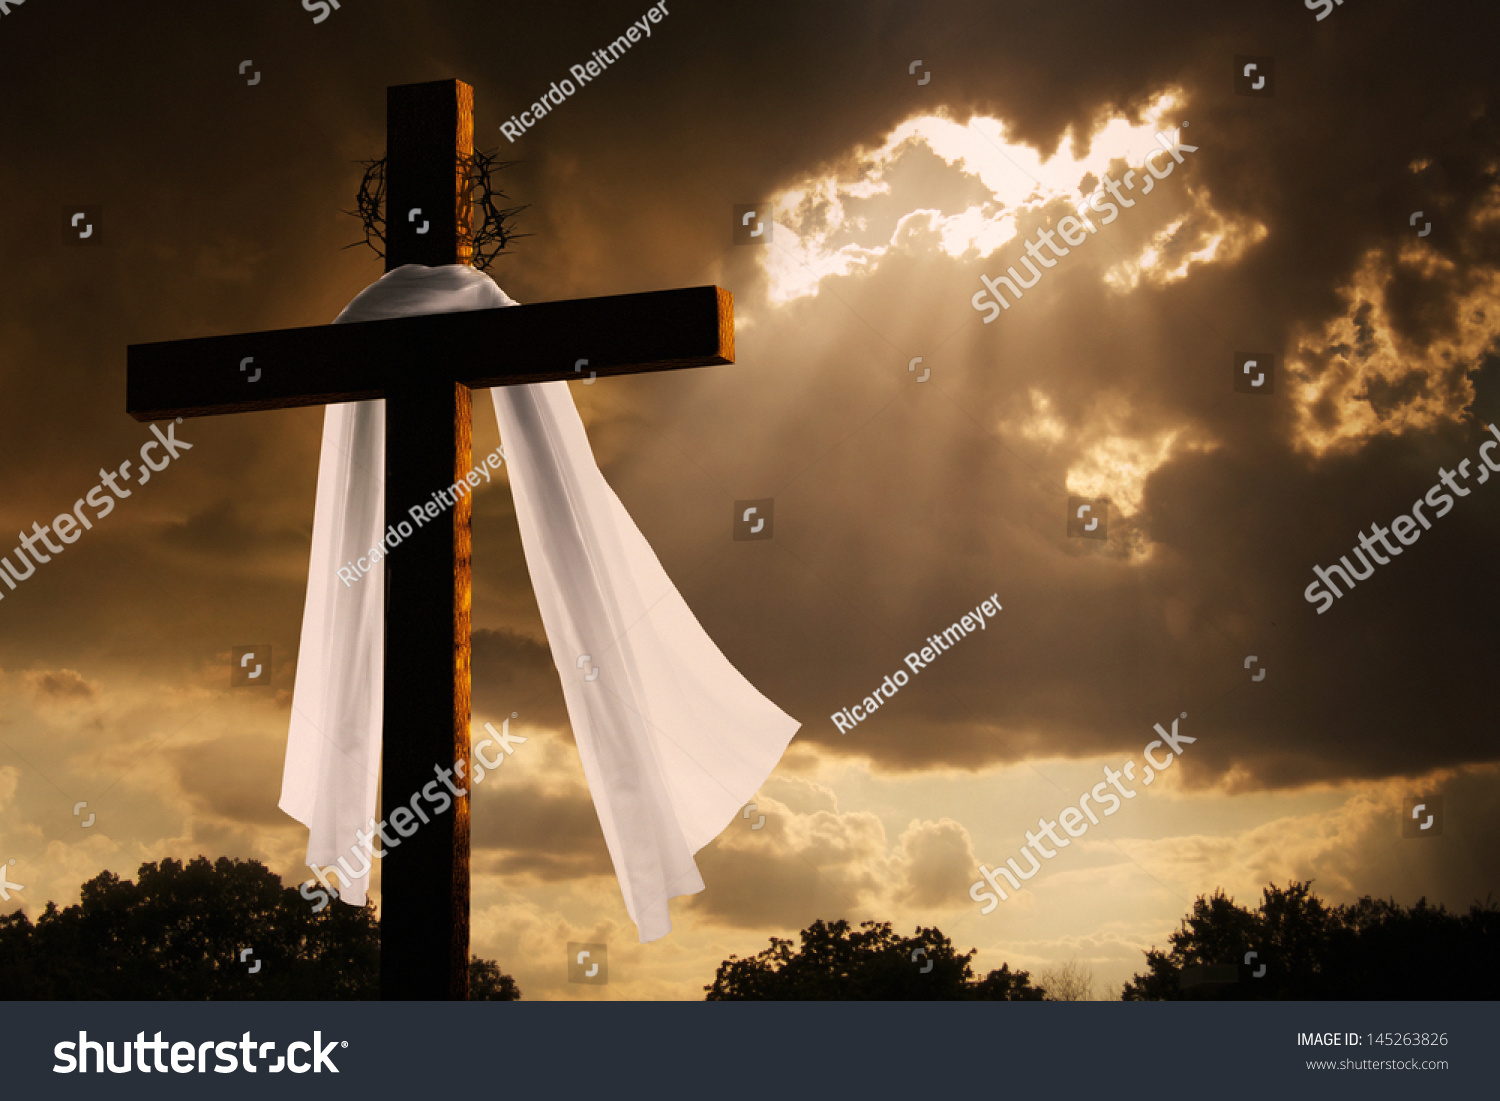 Silhouette of the holy cross on background of storm clouds stock - This Dramatic Lighting With Storm Clouds Breaking And Sunshine Bursting Through Makes A Great Easter Photo